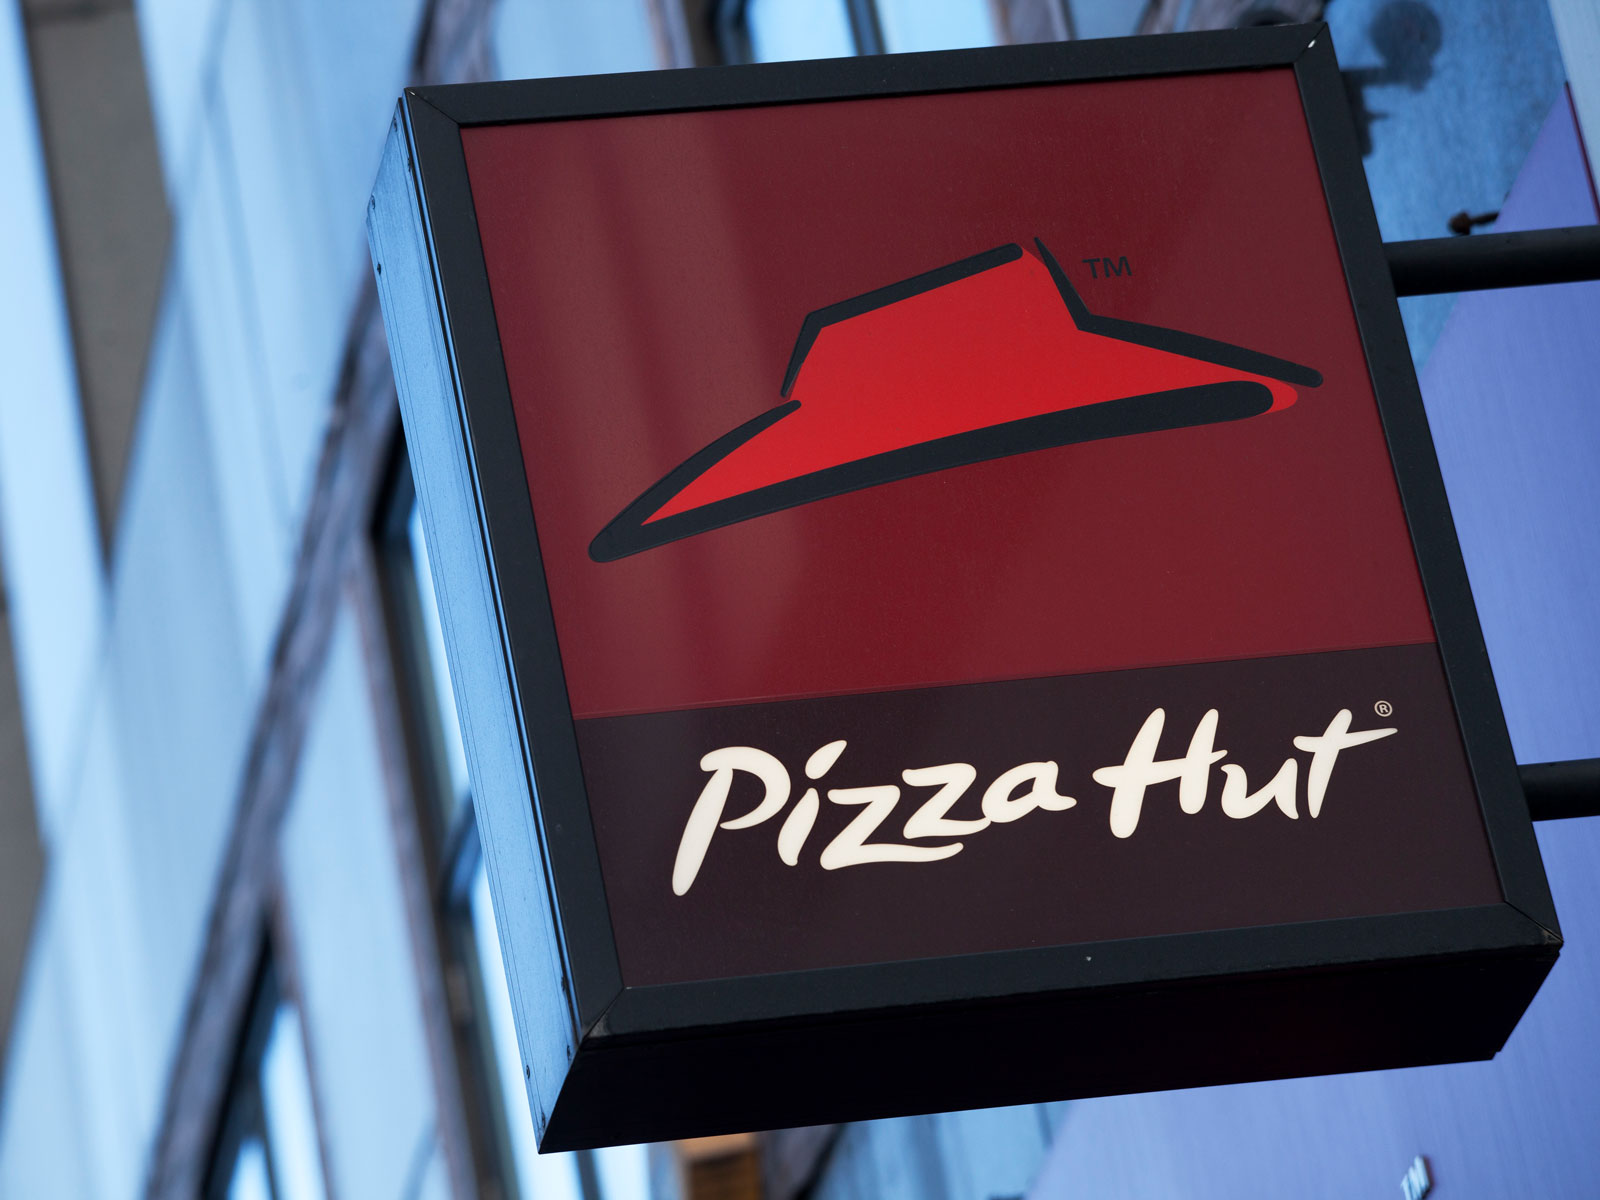 Pizza Hut to Close Hundreds of Dine-in Restaurants to Focus on Carryout Locations